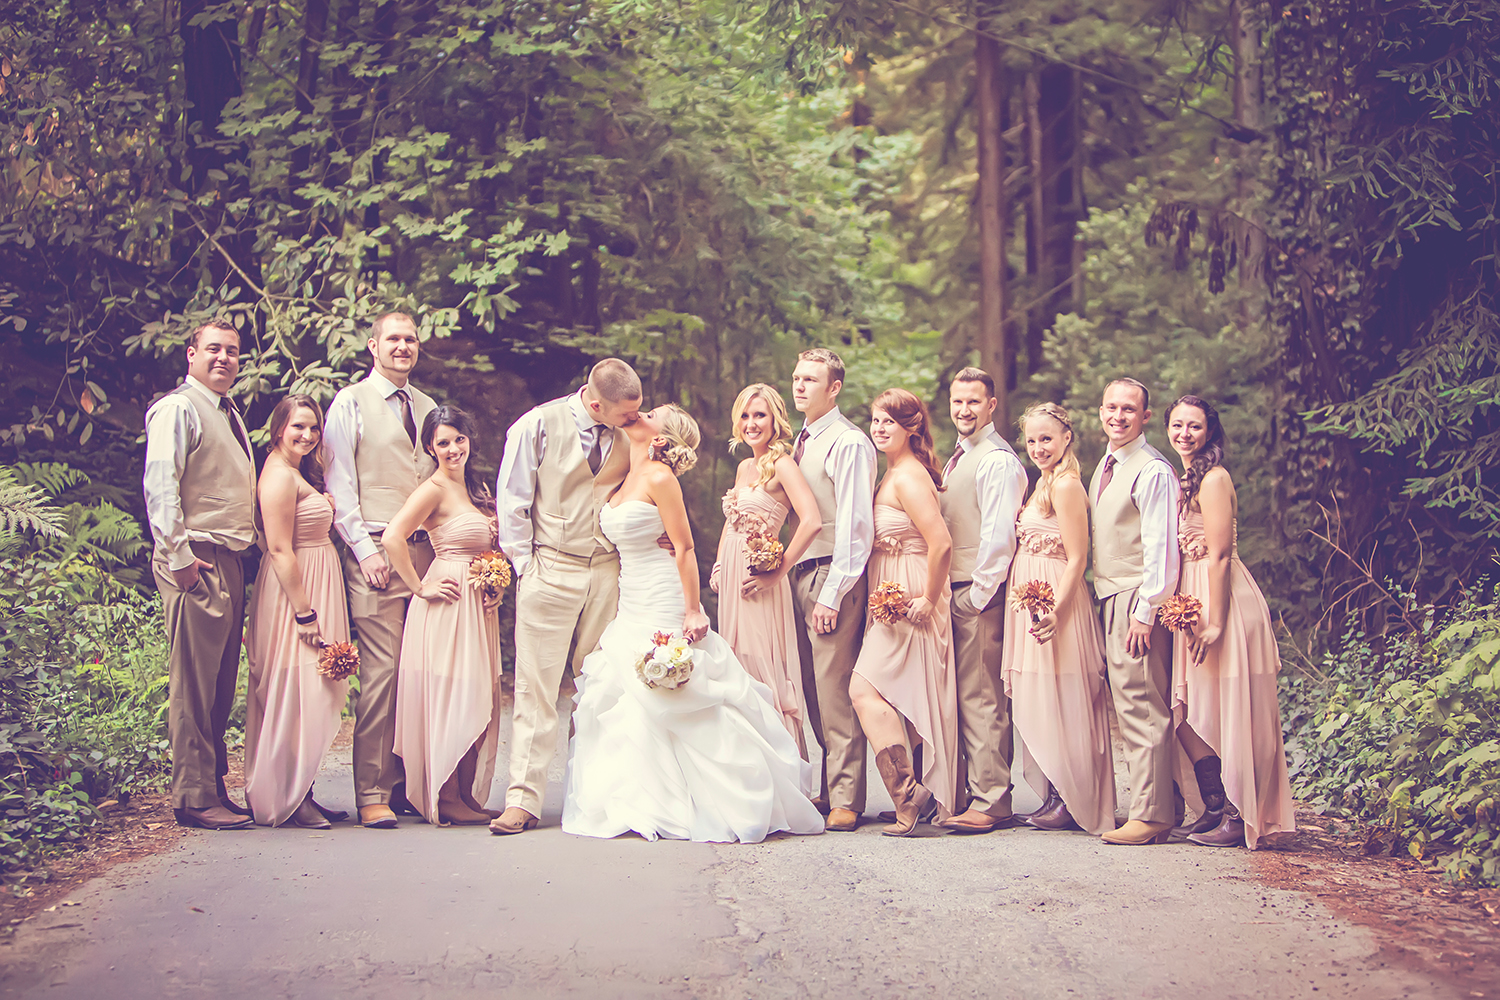 Dena_Rooney_Wedding_Photographer_Santa_Cruz_015.jpg